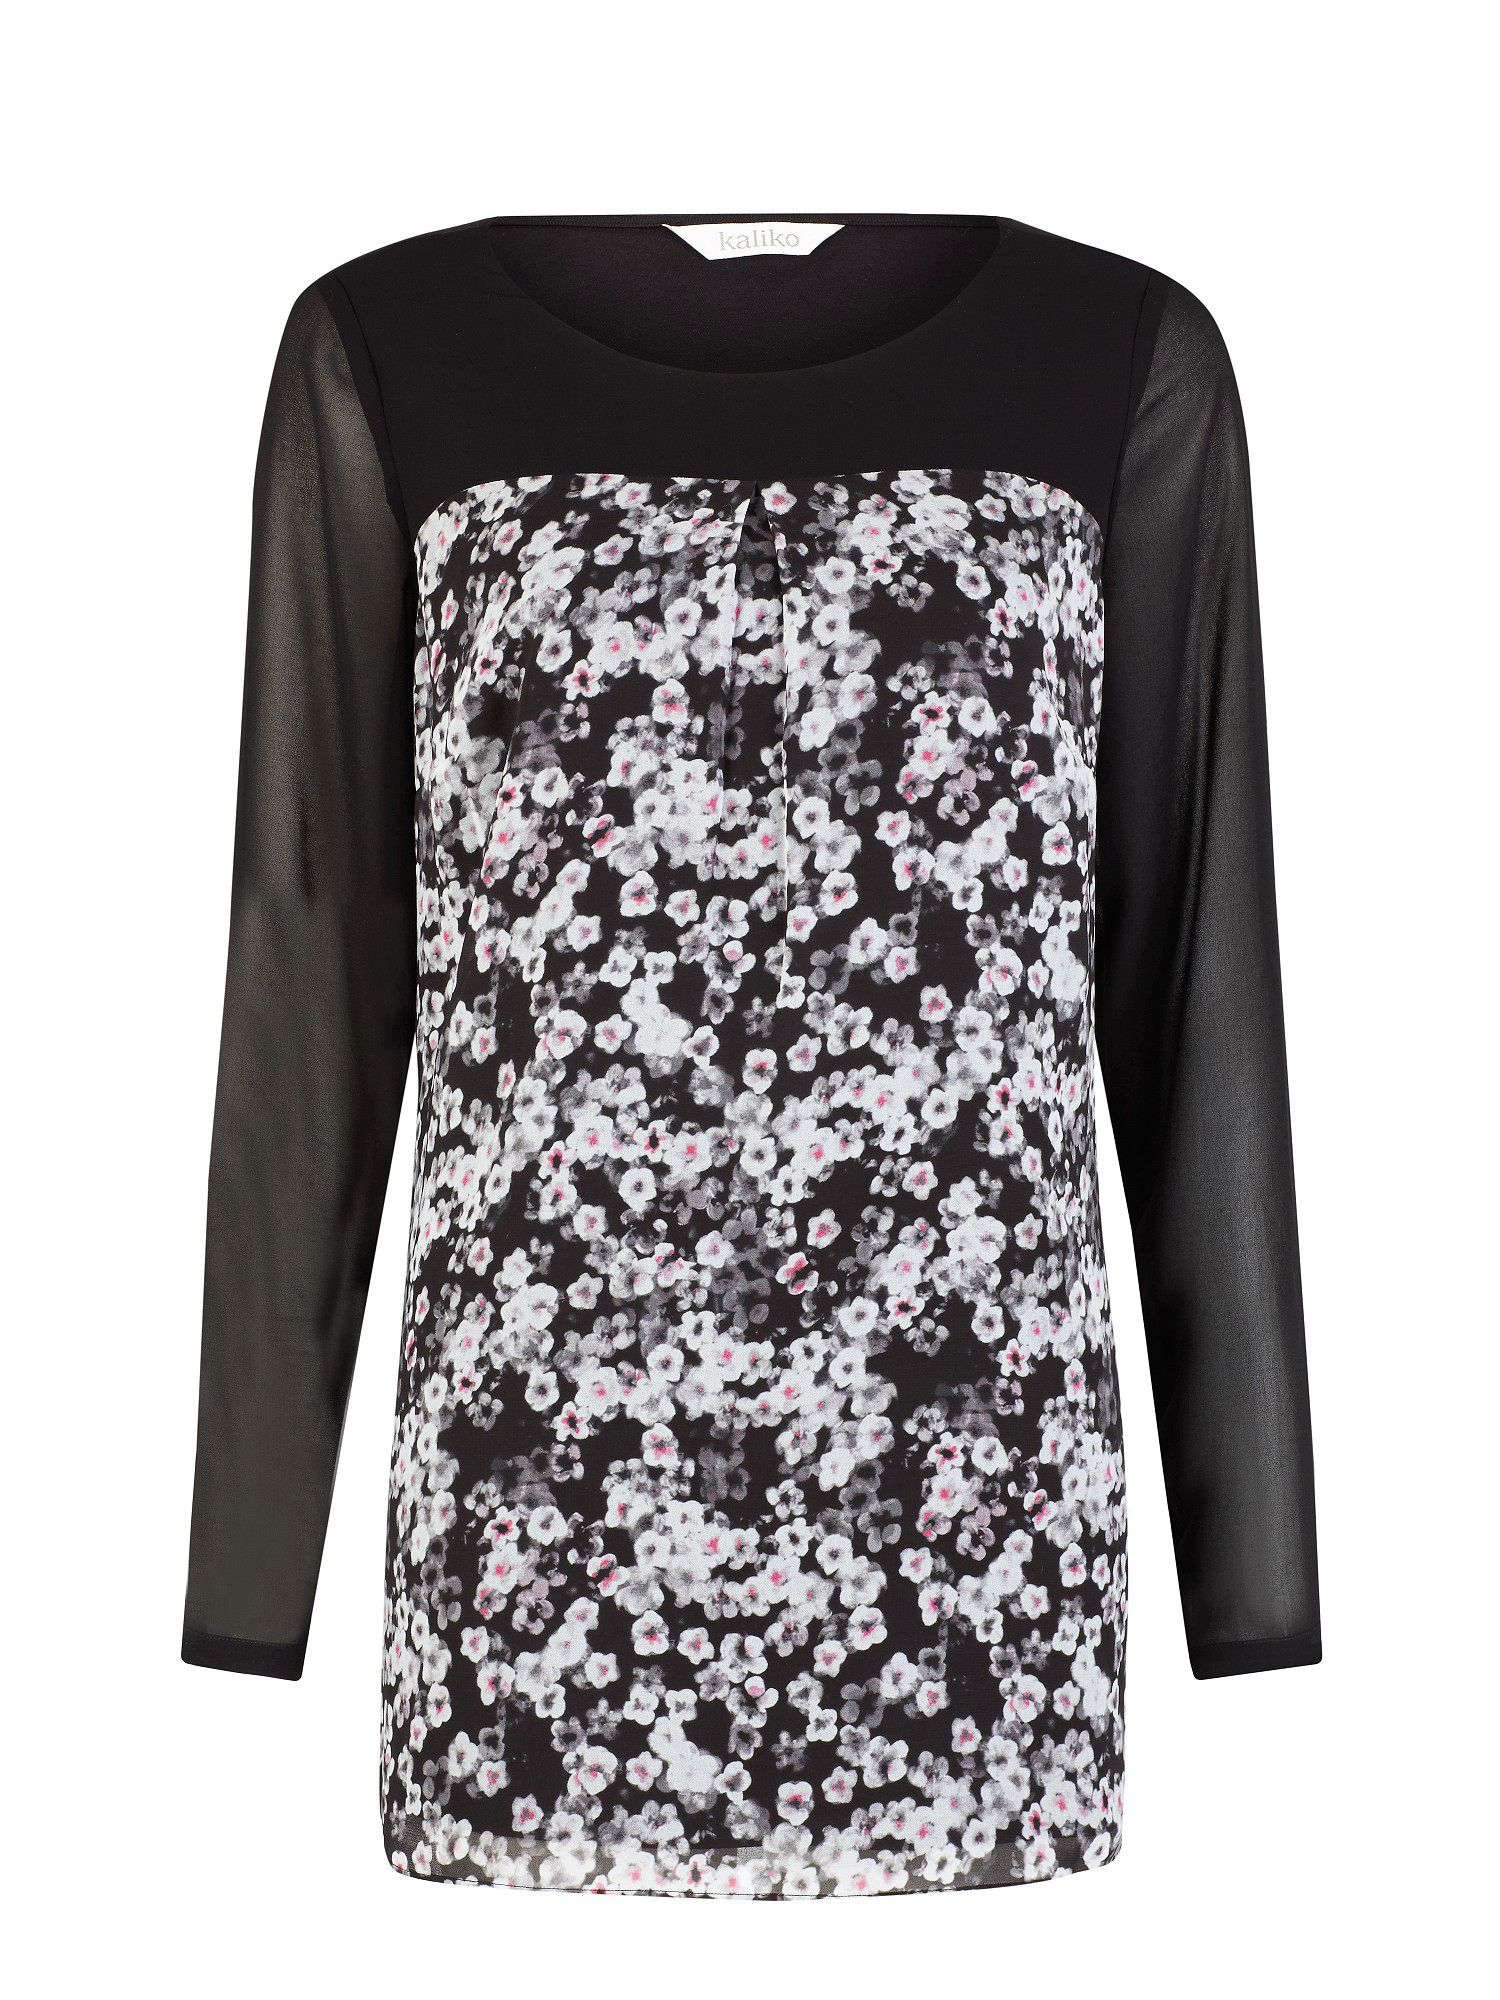 Suzie floral printed top